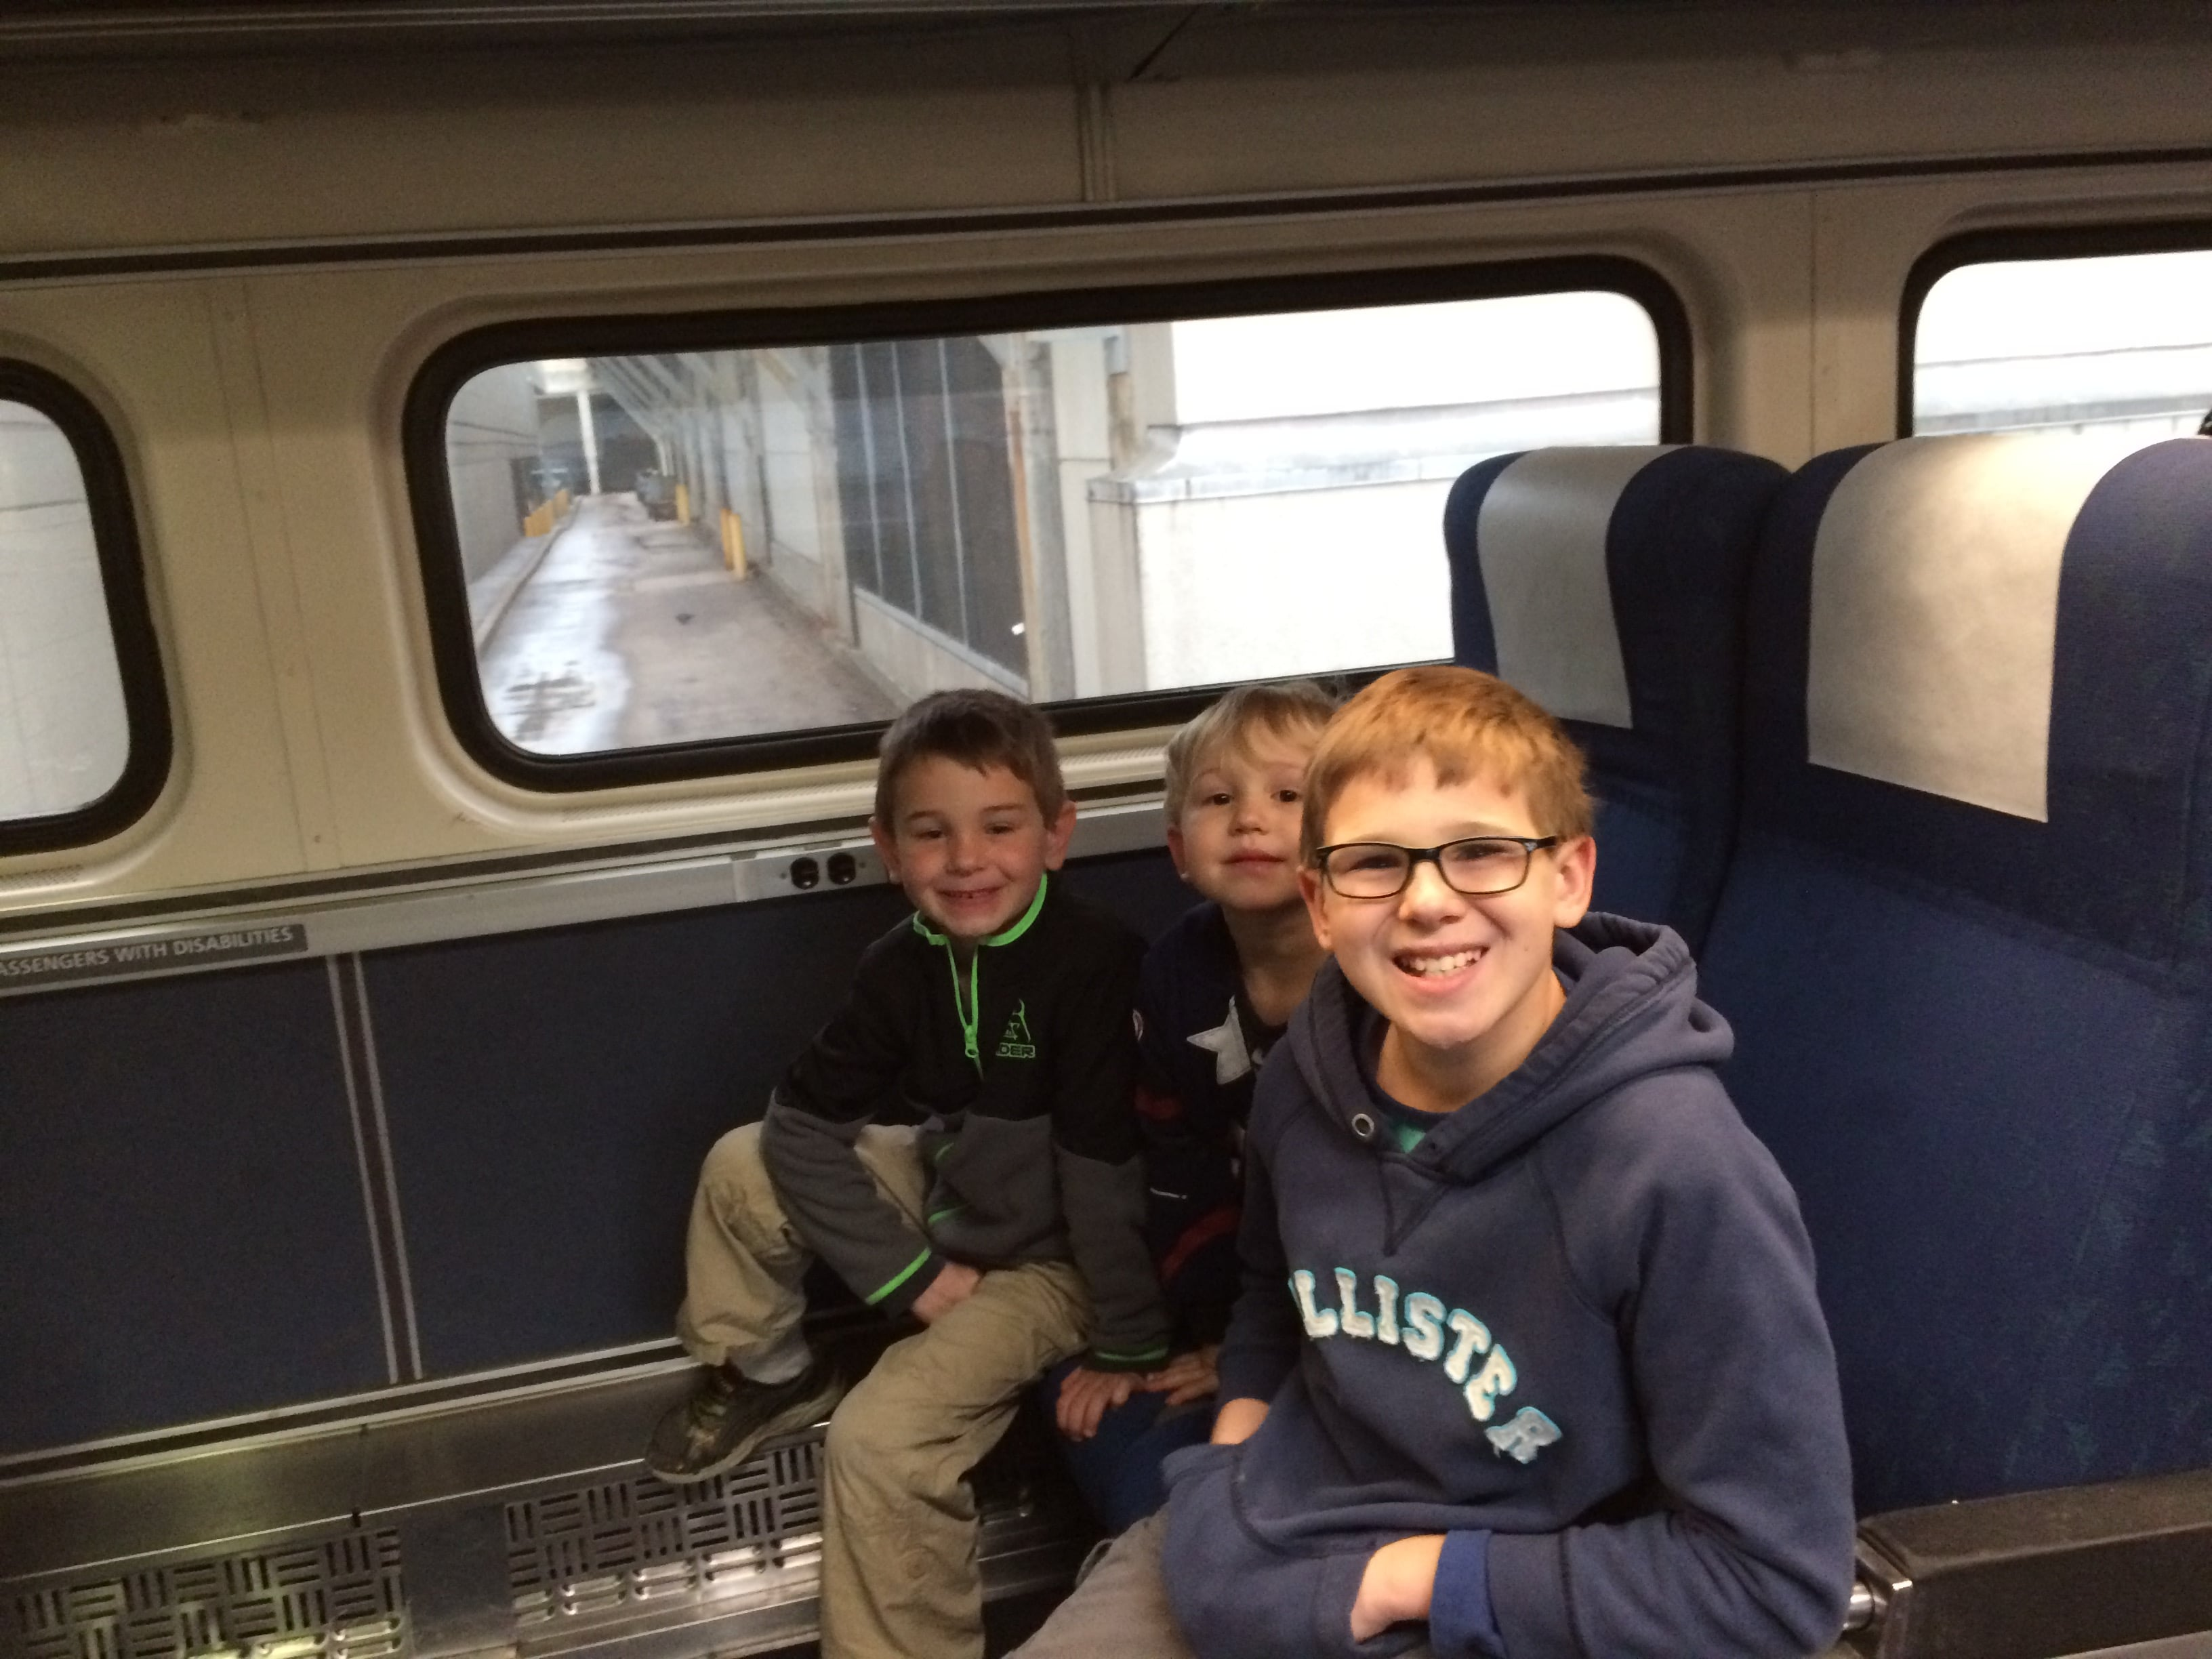 3 boys on Amtrak train